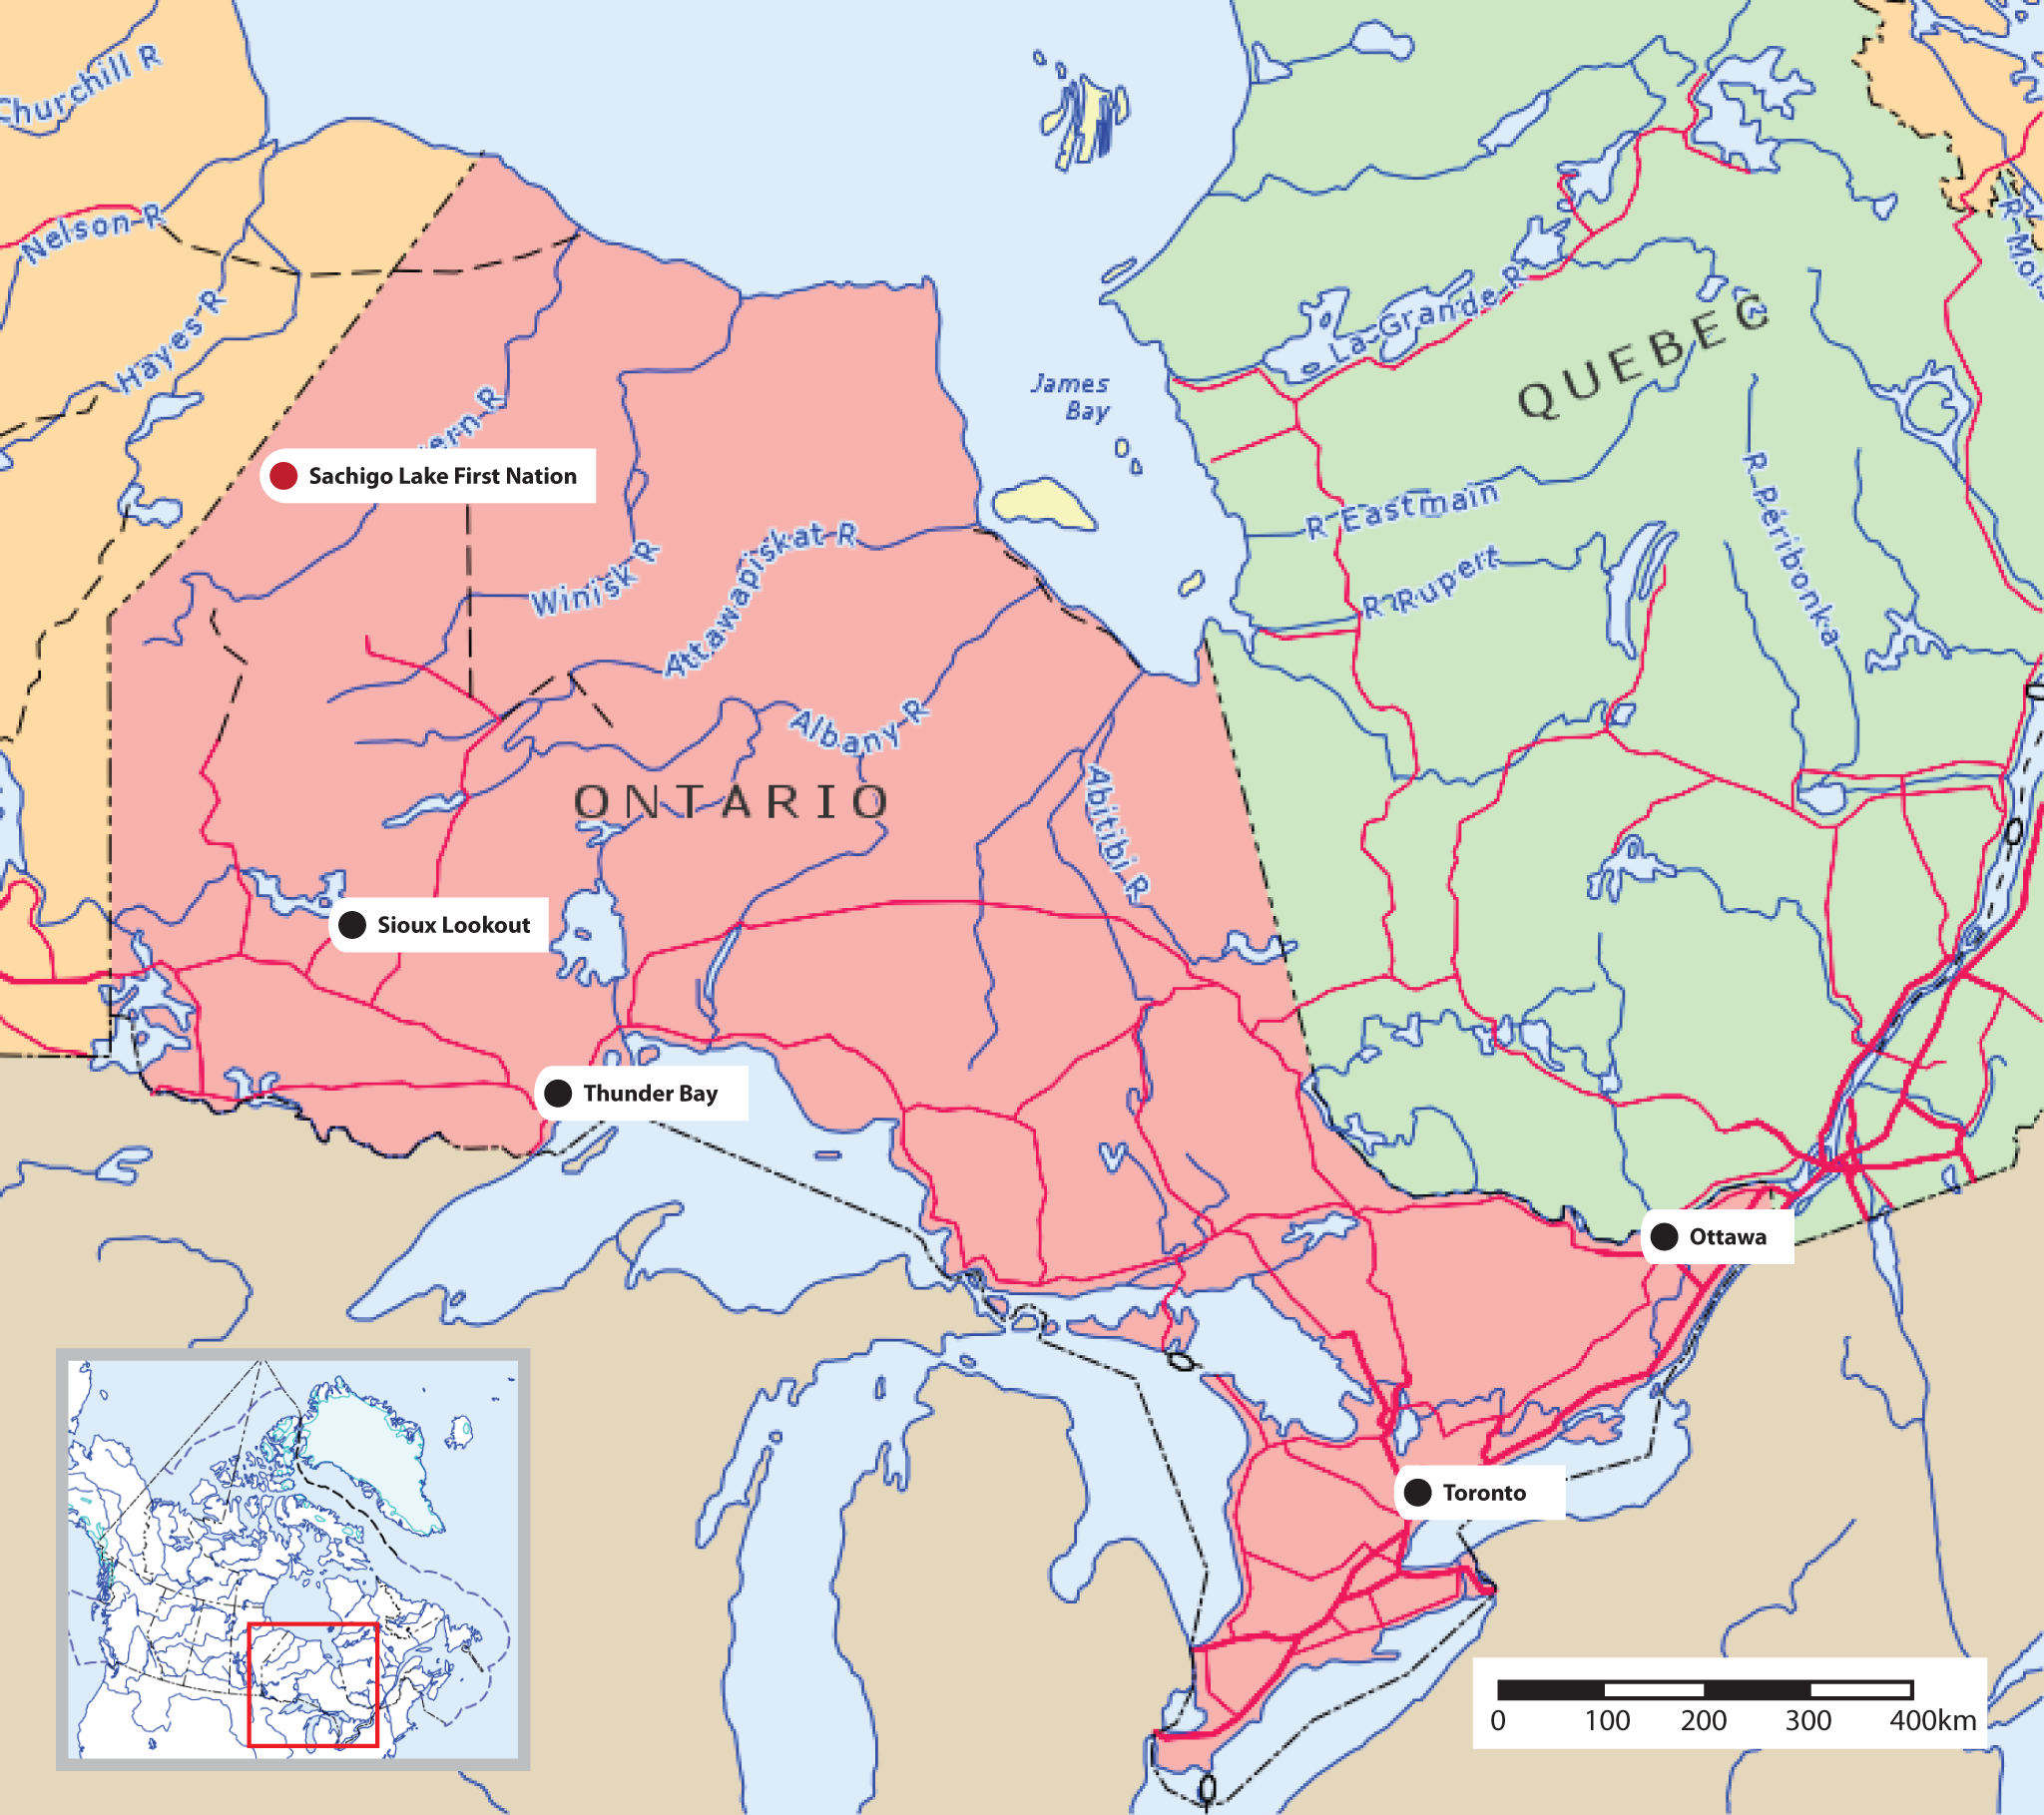 Map of Ontario showing Sachigo Lake First Nation.